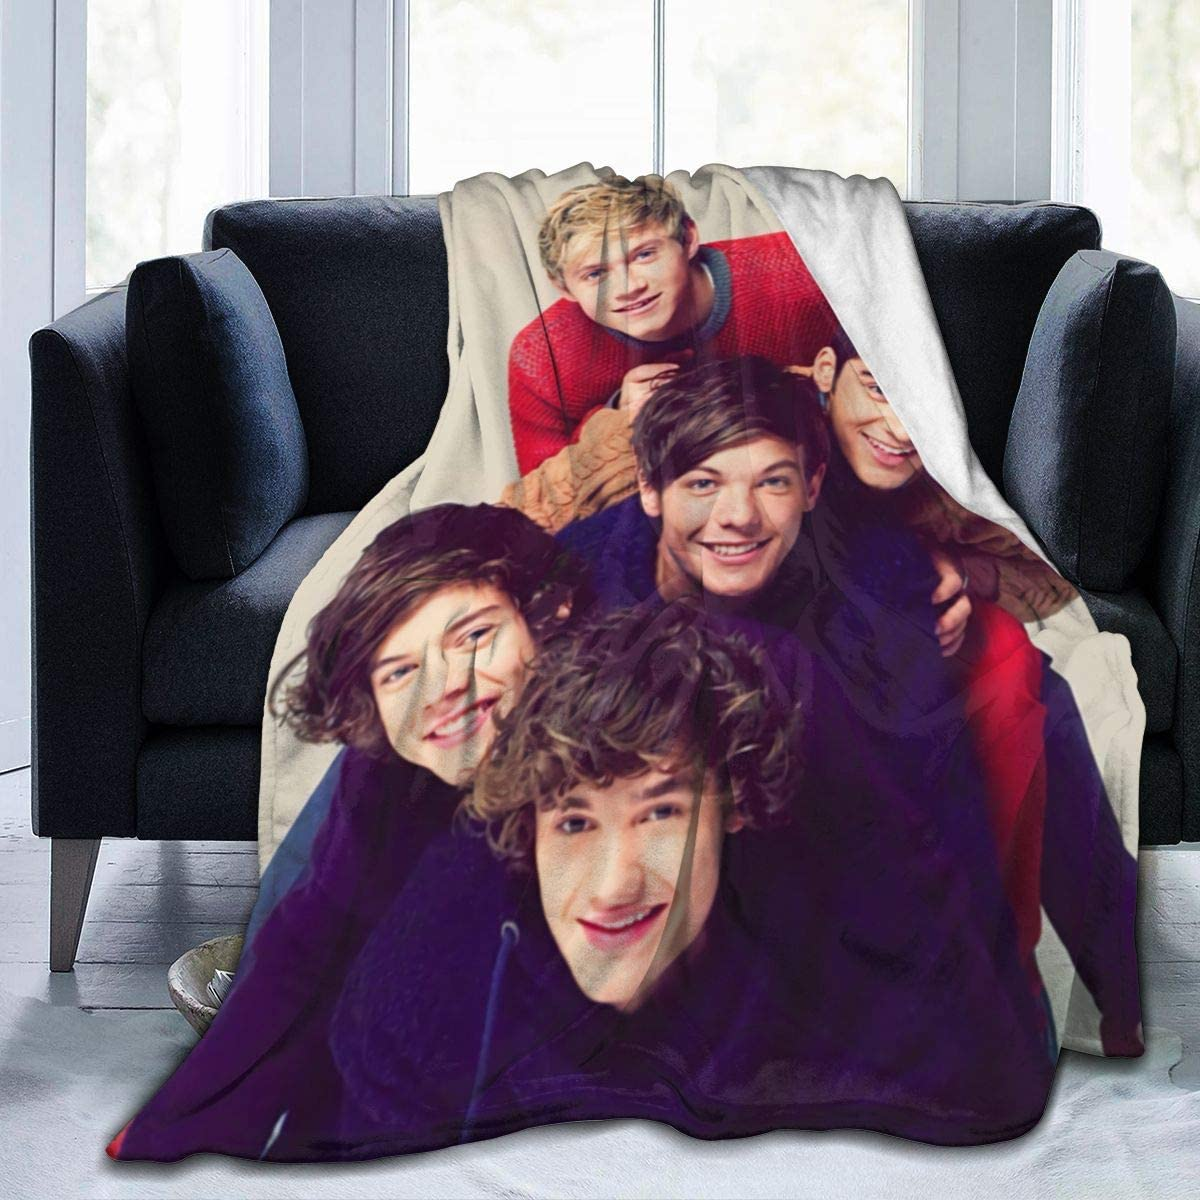 Maxwellmore One Direction Throw Blankets Lightweight Soft Flannel Bed Blanket for Home Sofa 50